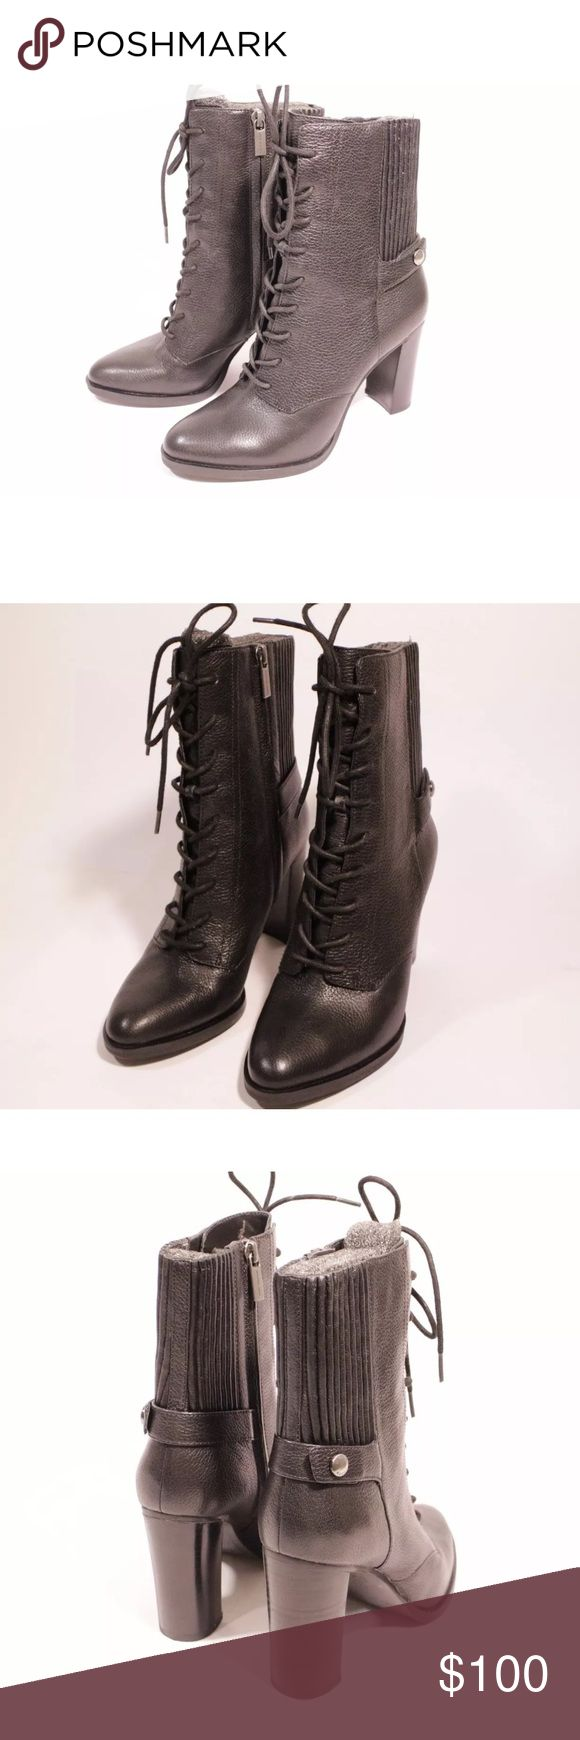 Michael kors black leather lace up booties Used as store displays and close to new condition! Authentic. Genuine leather. Super cute! Michael Kors Shoes Ankle Boots & Booties